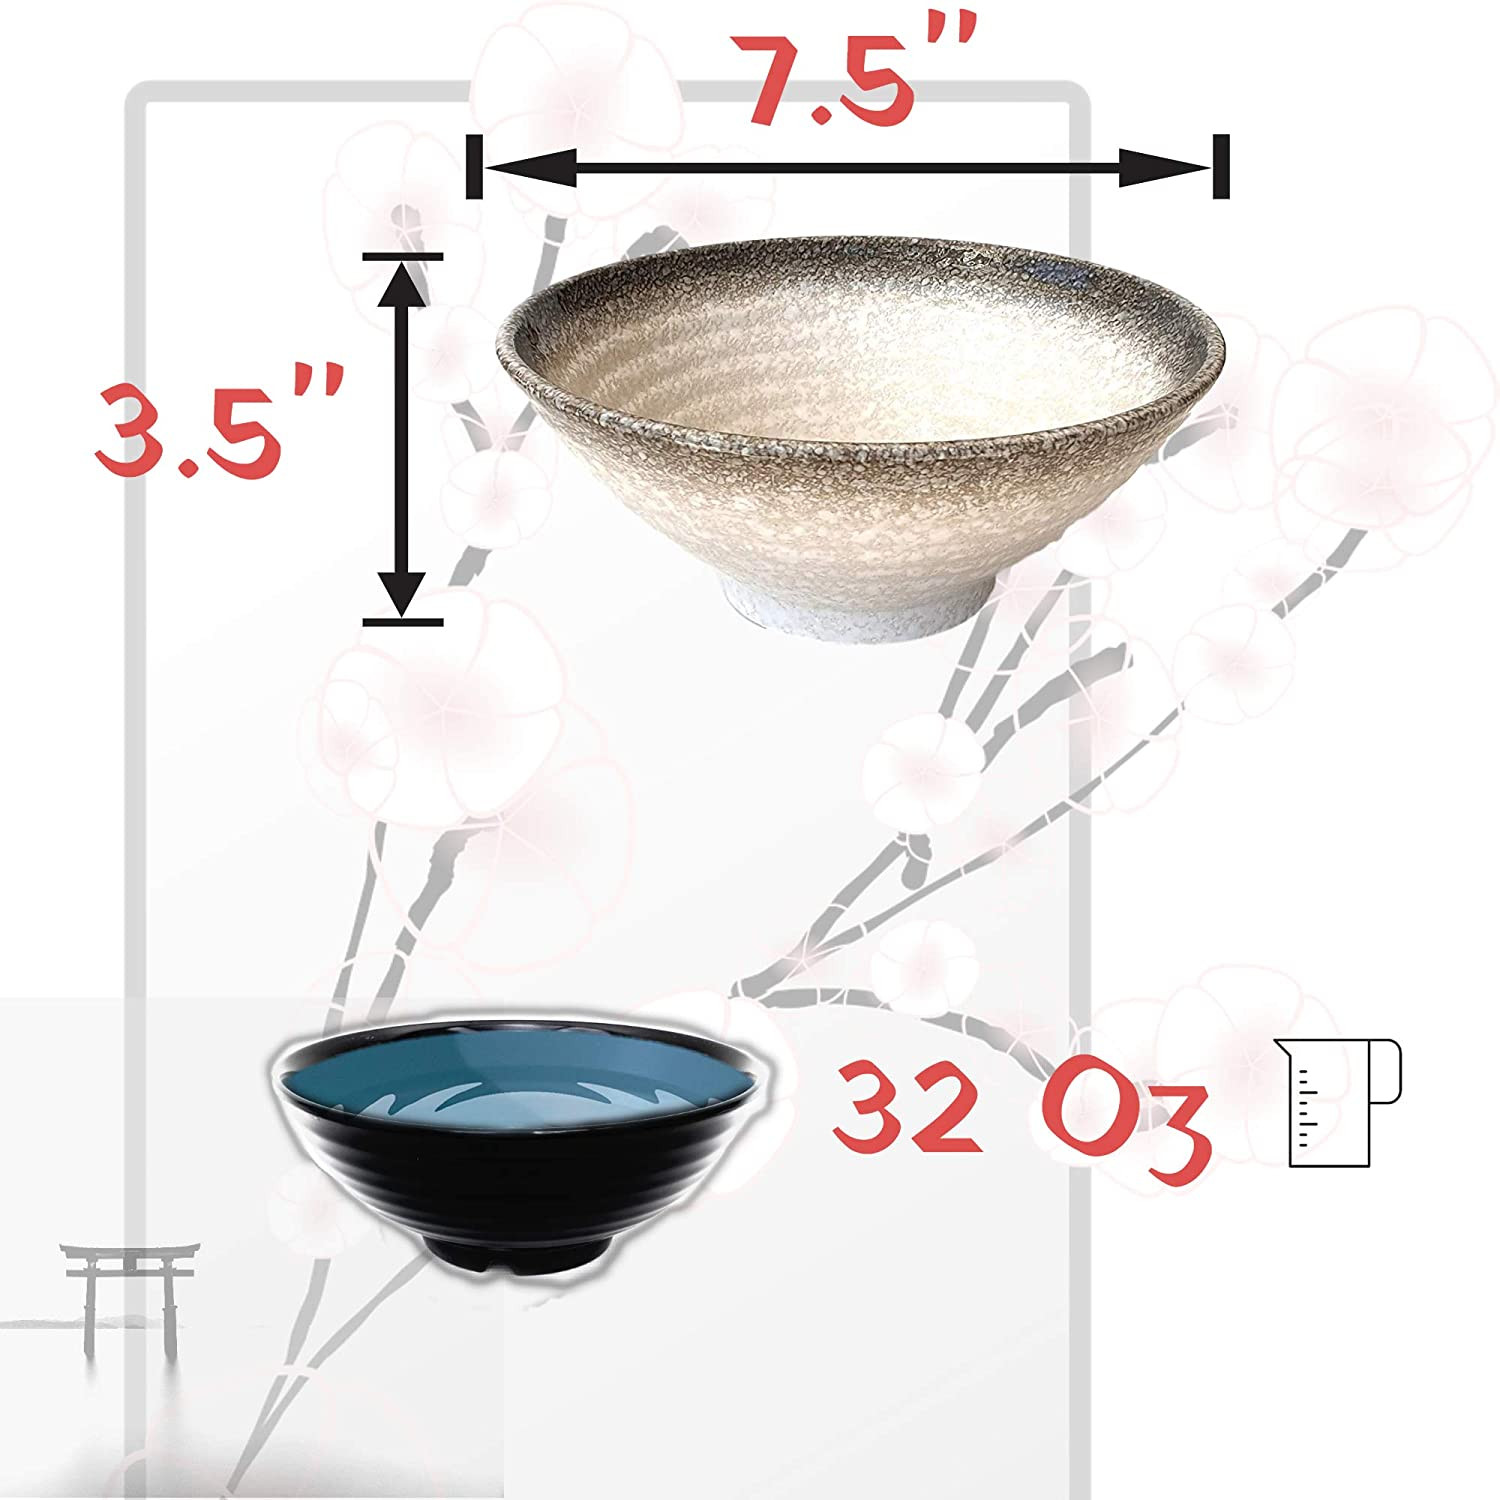 Noodle Udon 10 Pieces Large 32 Ounces for Noodles Thai Dinnerware for Any Soup Meal Ceramic Ramen Bowl Set Pho Bowls Asian Japanese With Spoons Chopsticks and Stands 2 Set